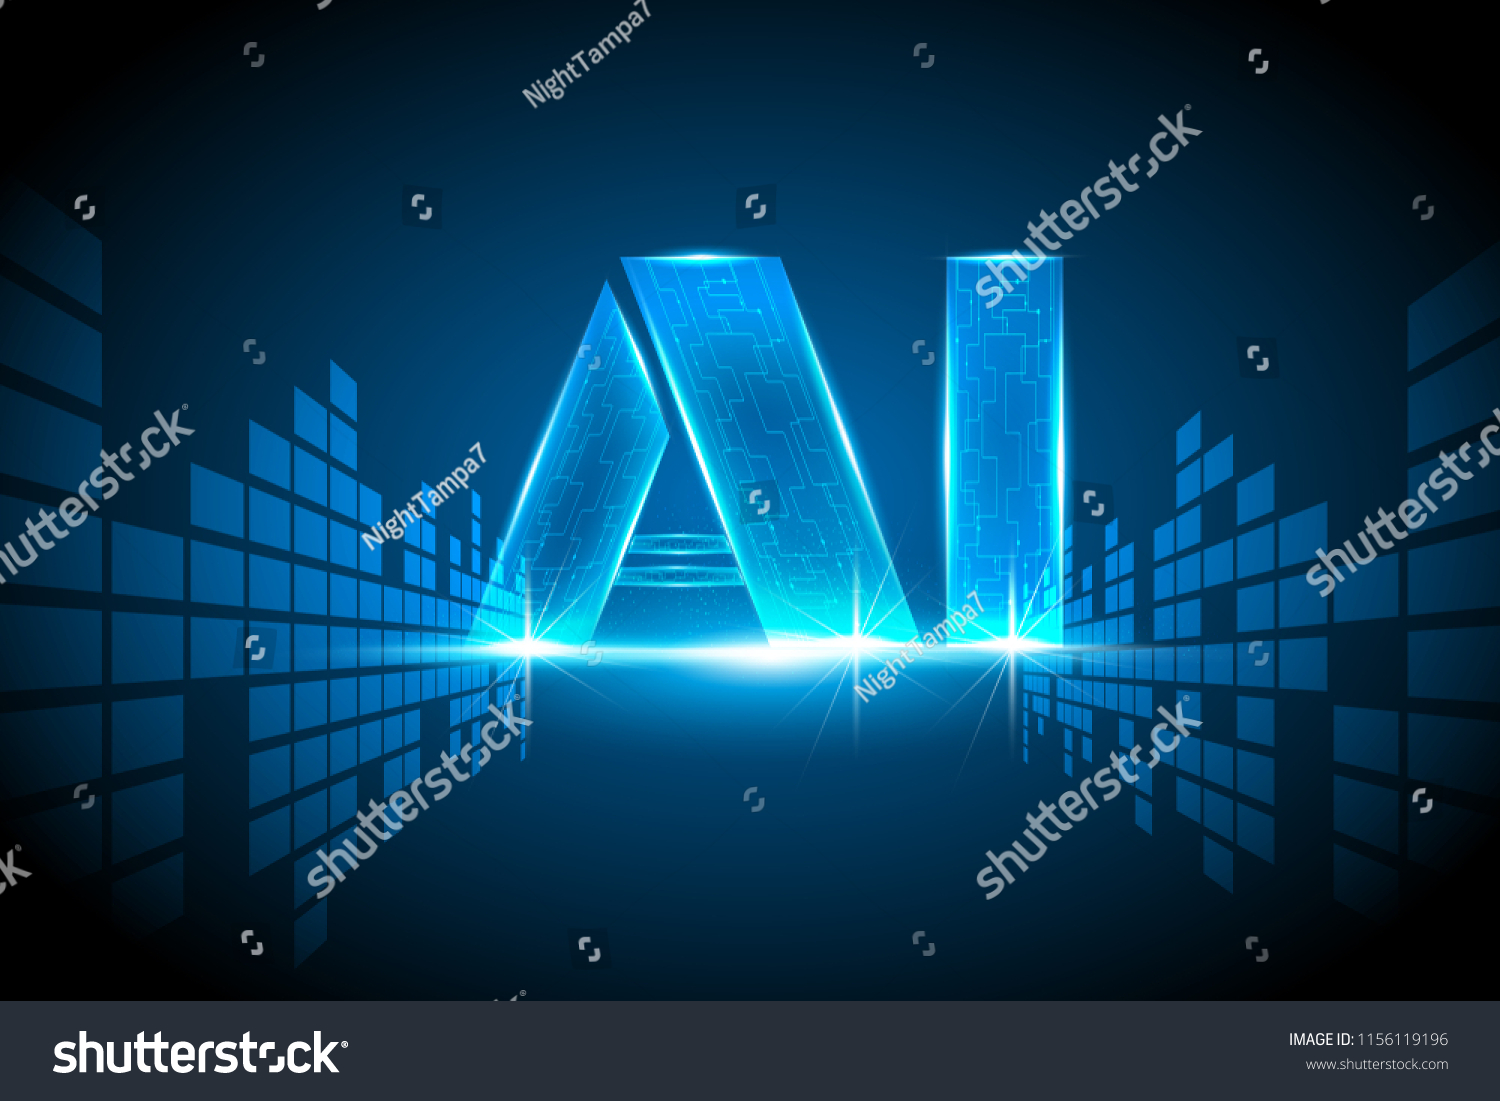 Ai Digital Artificial Intelligence Data Transformation Stock Vector Circuits Circuitsymbols Jpg 646 Electrical And Conceptvector Illustration